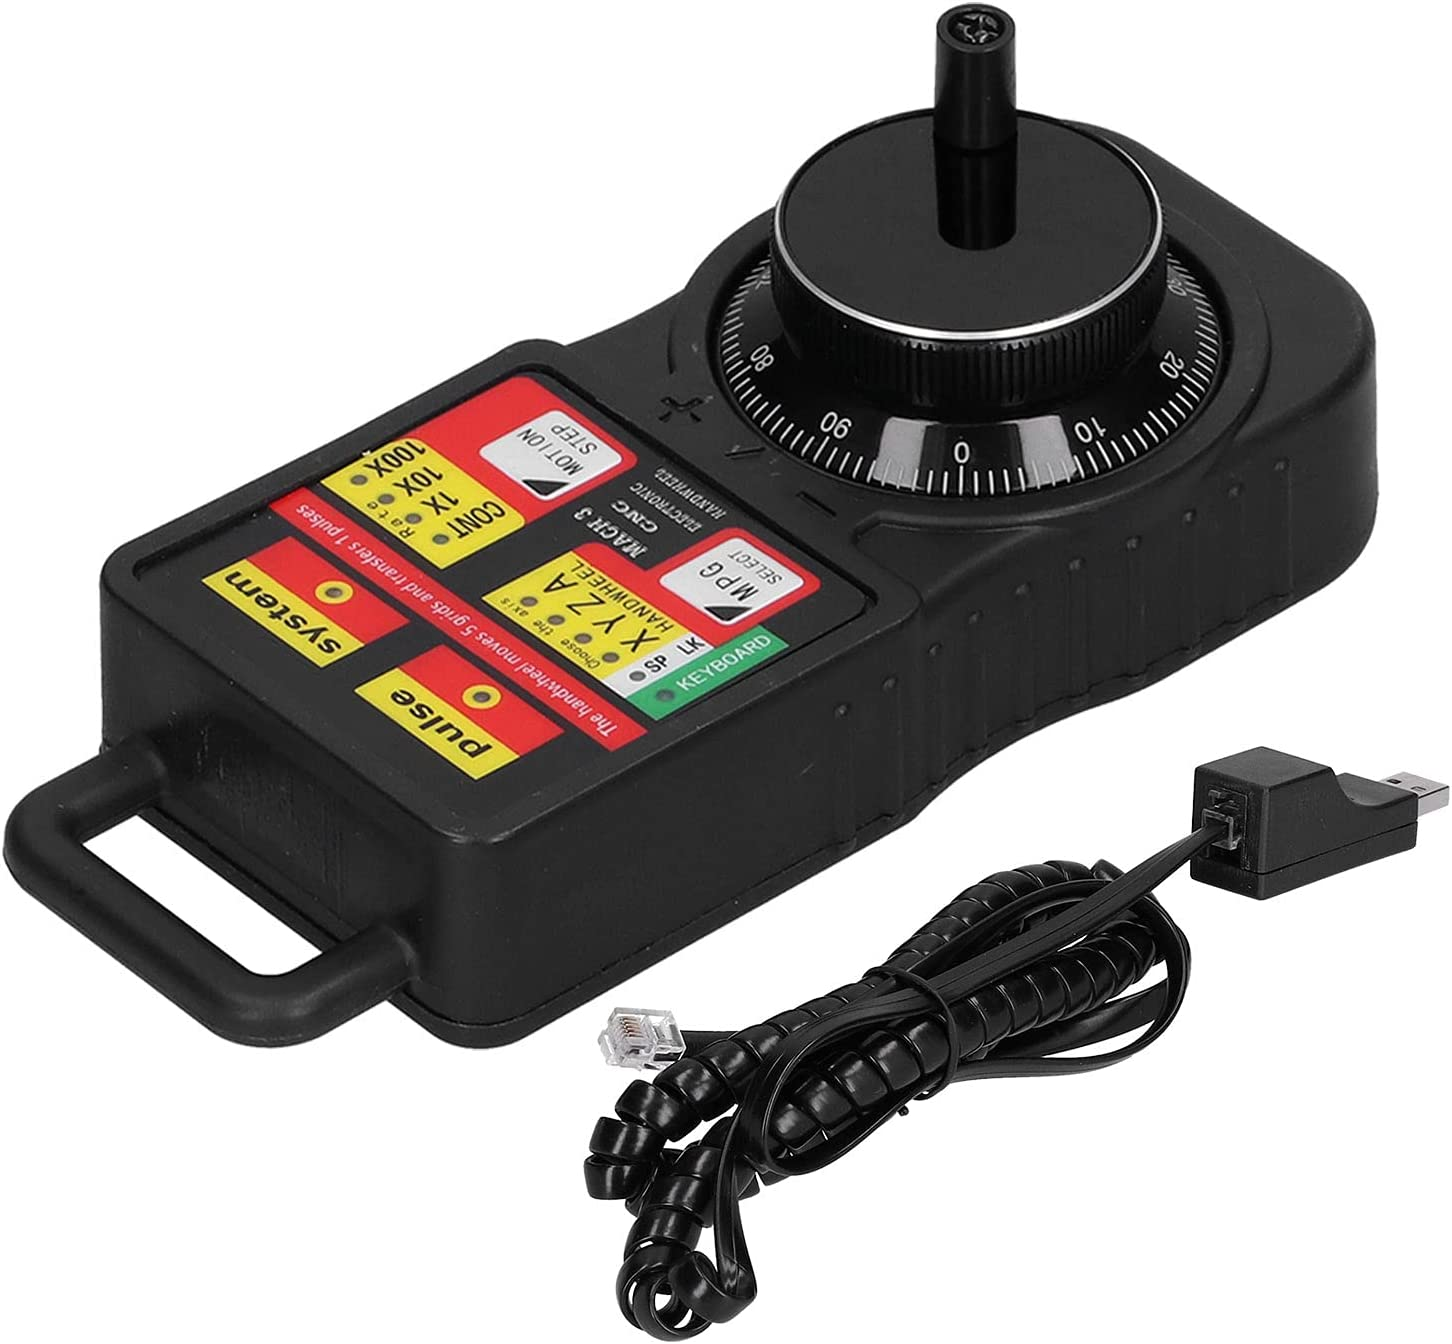 Electronic Handwheel Control Efficient Max 74% OFF and 2021 spring and summer new